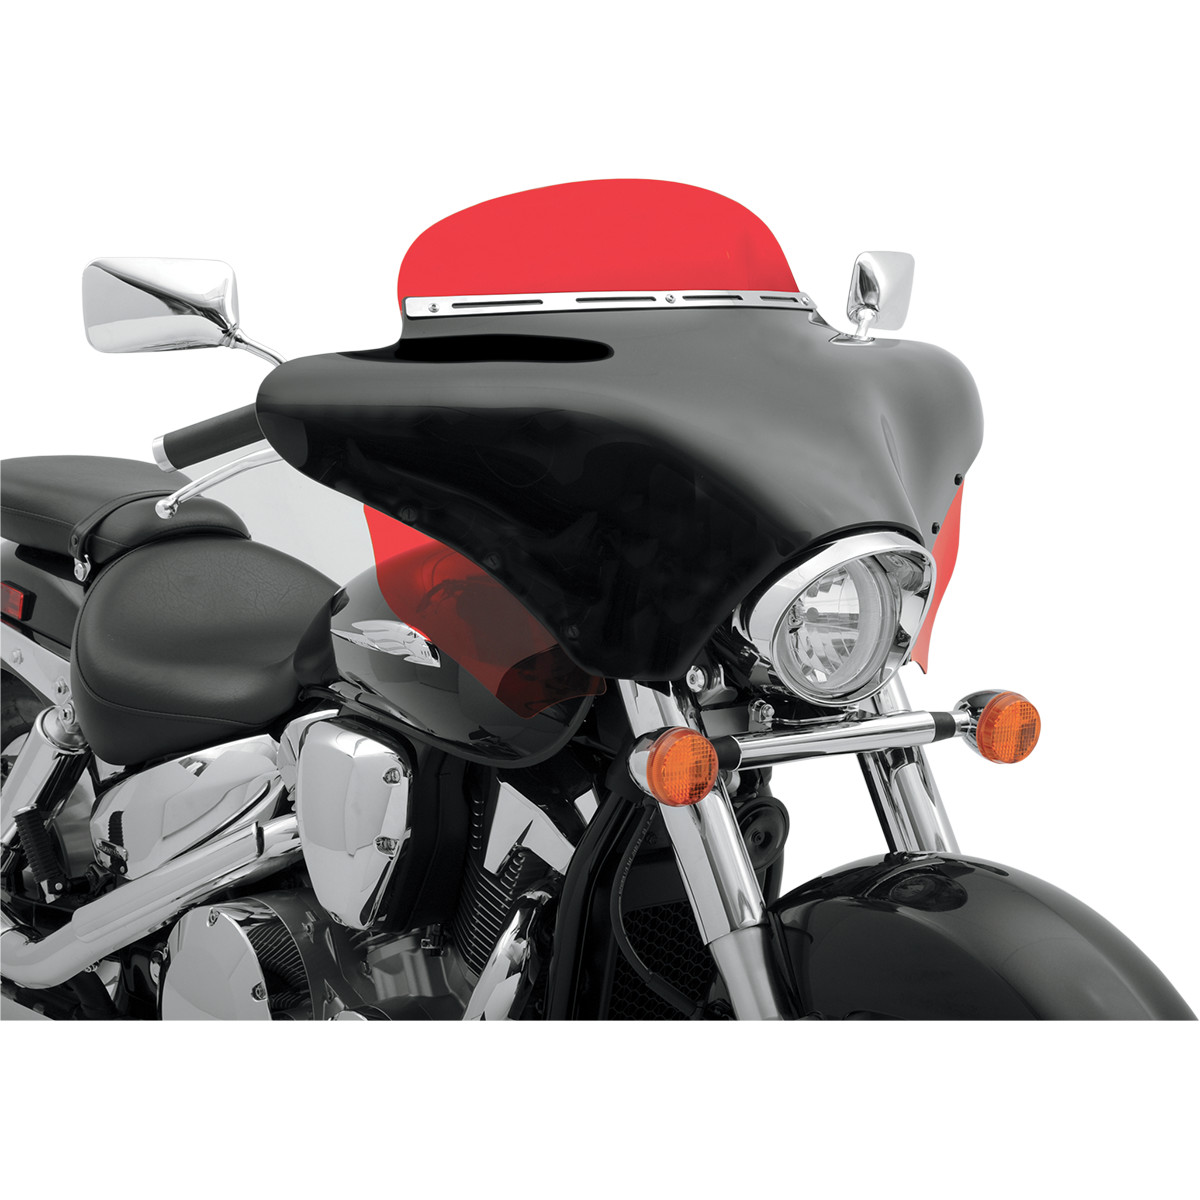 Batwing Fairing Windshield and Mount Kit